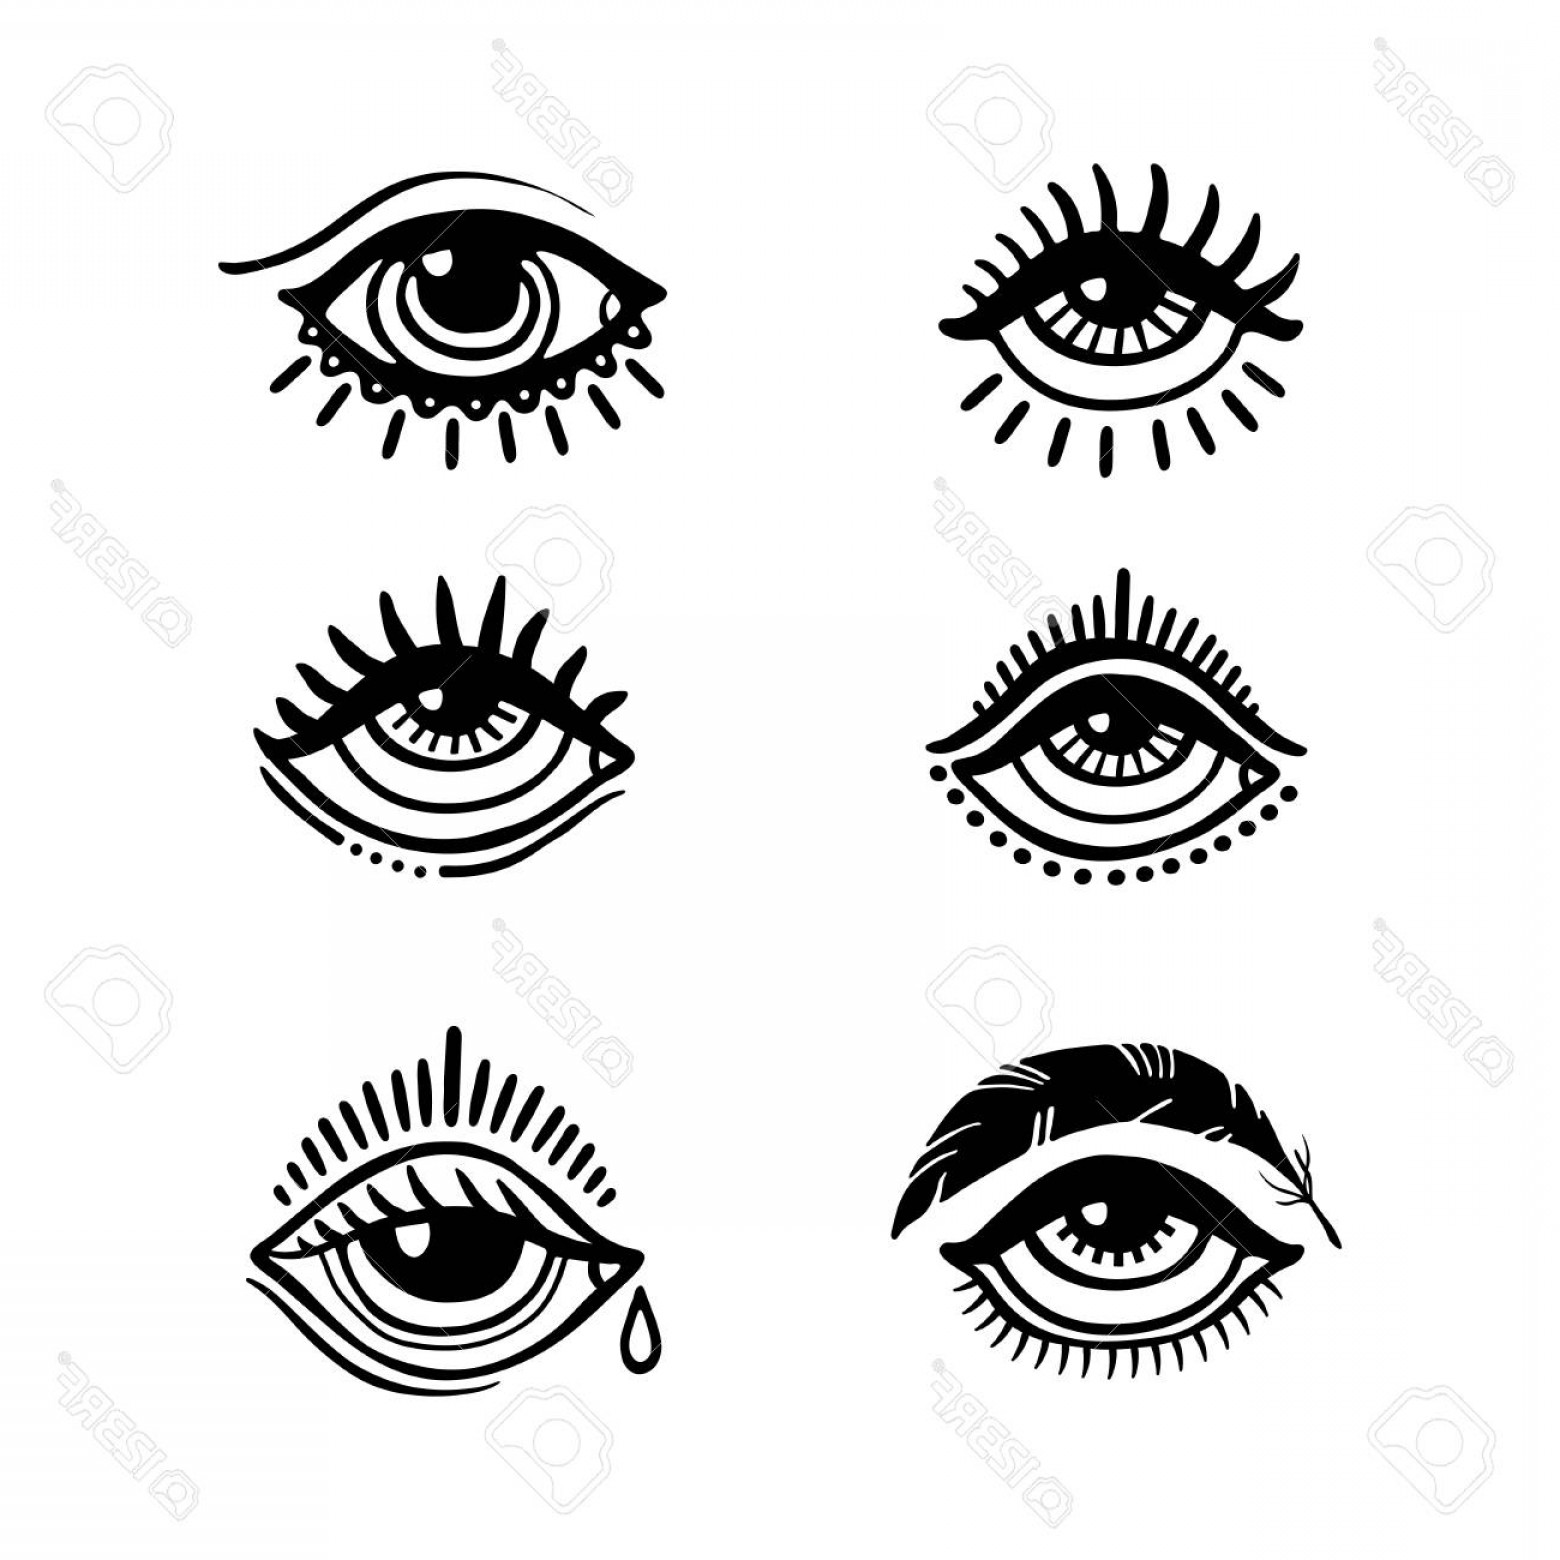 Eye Tatoo Vector: Photostock Vector Set Of Hand Drawn Eyes Doodle Style Tattoo Design Element The Third Eye Vector Illustration